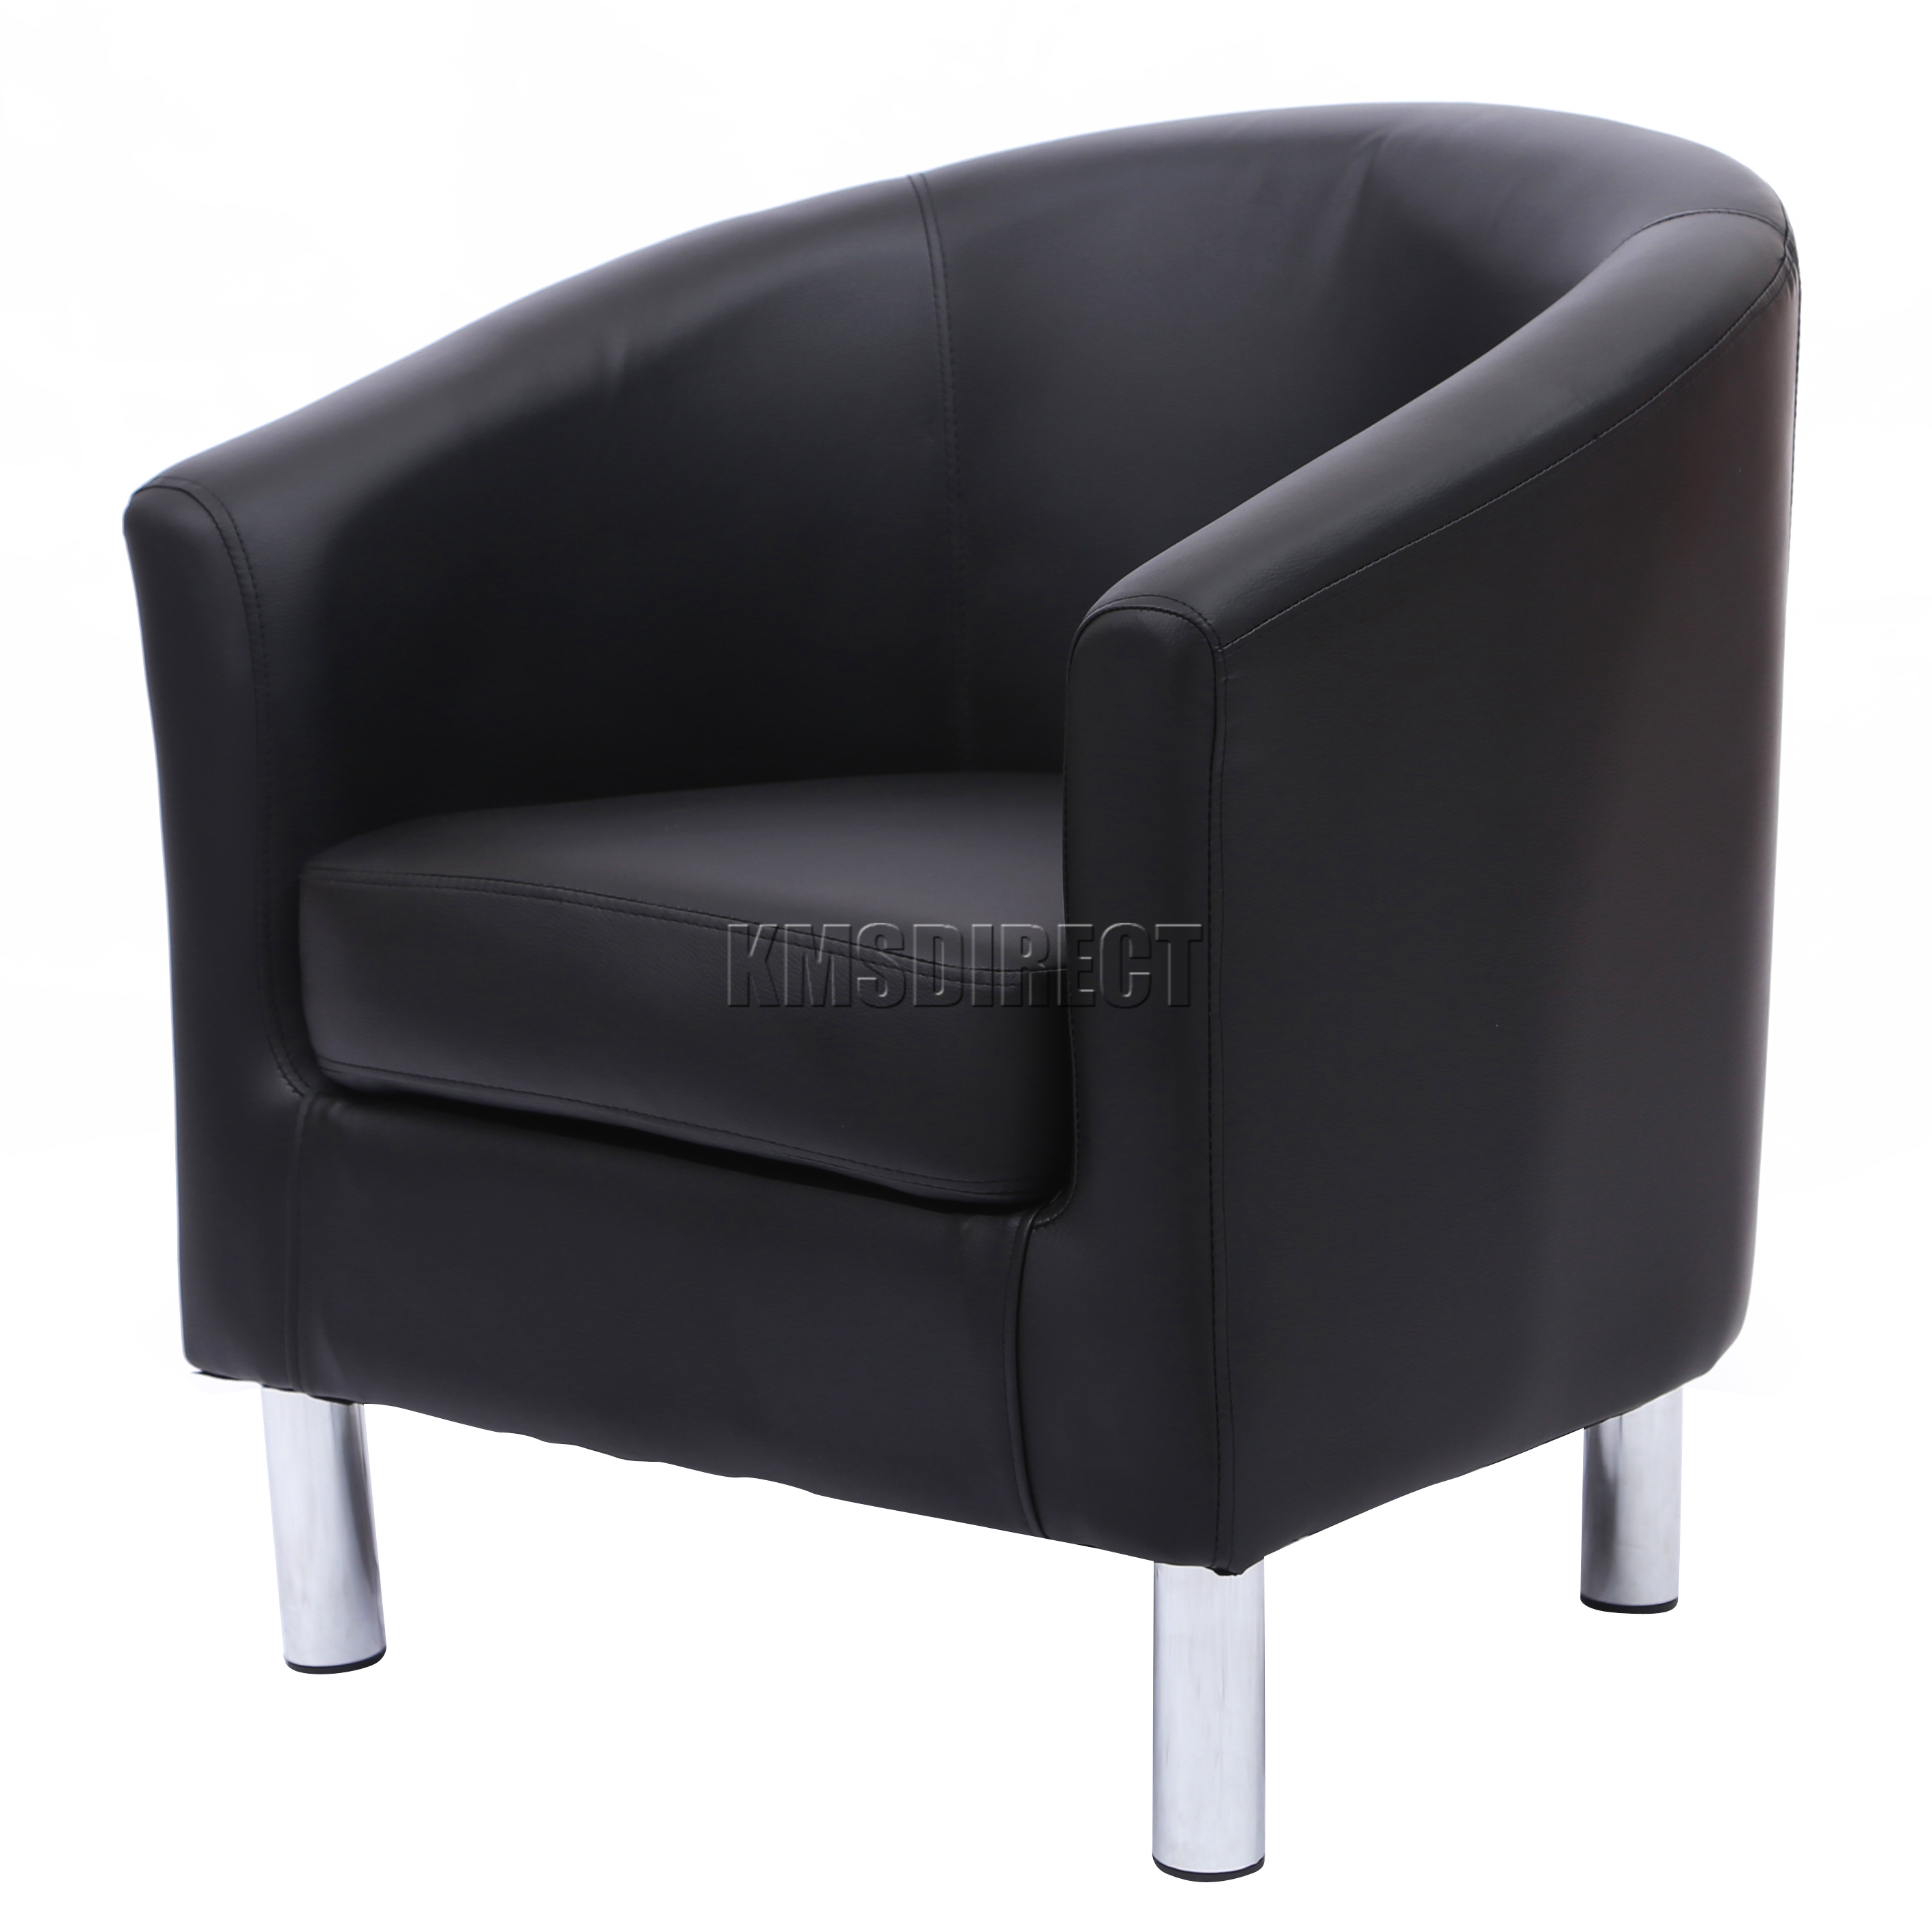 foxhunter modern tub chair armchair pu faux leather with chrome leg dining black ebay. Black Bedroom Furniture Sets. Home Design Ideas